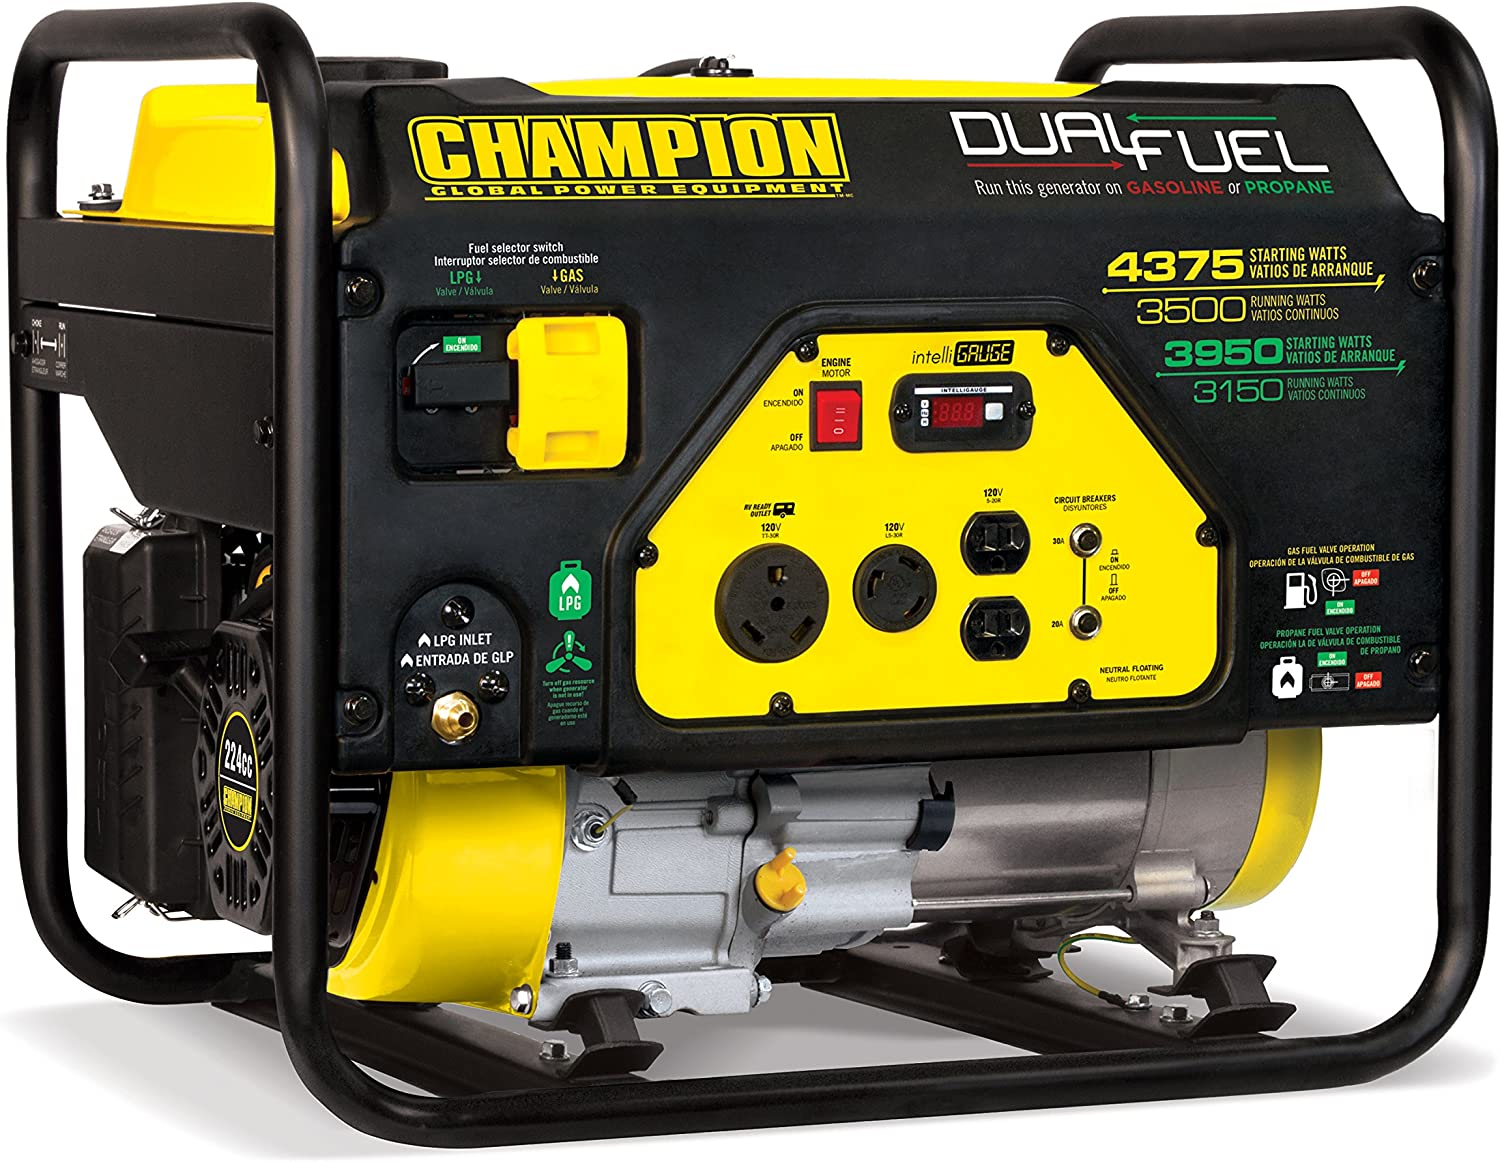 Best Home Generators For Power Outages 2020 (Top 10) 12